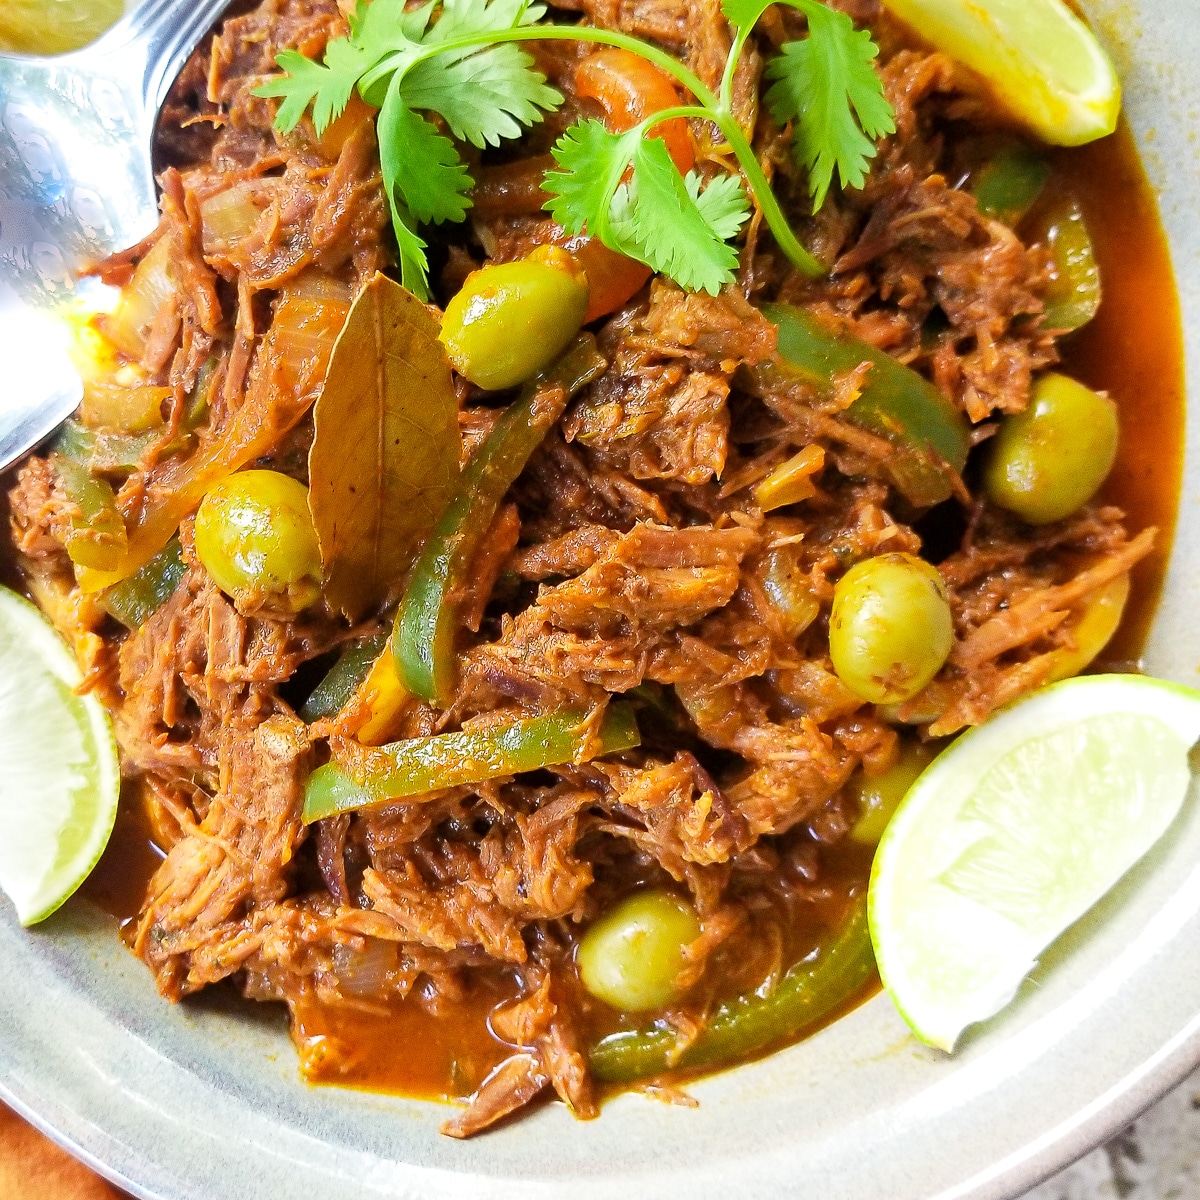 Carne Deshebrada served in a grey dish, topped with cilantro sprigs and surrounded by lime wedges.